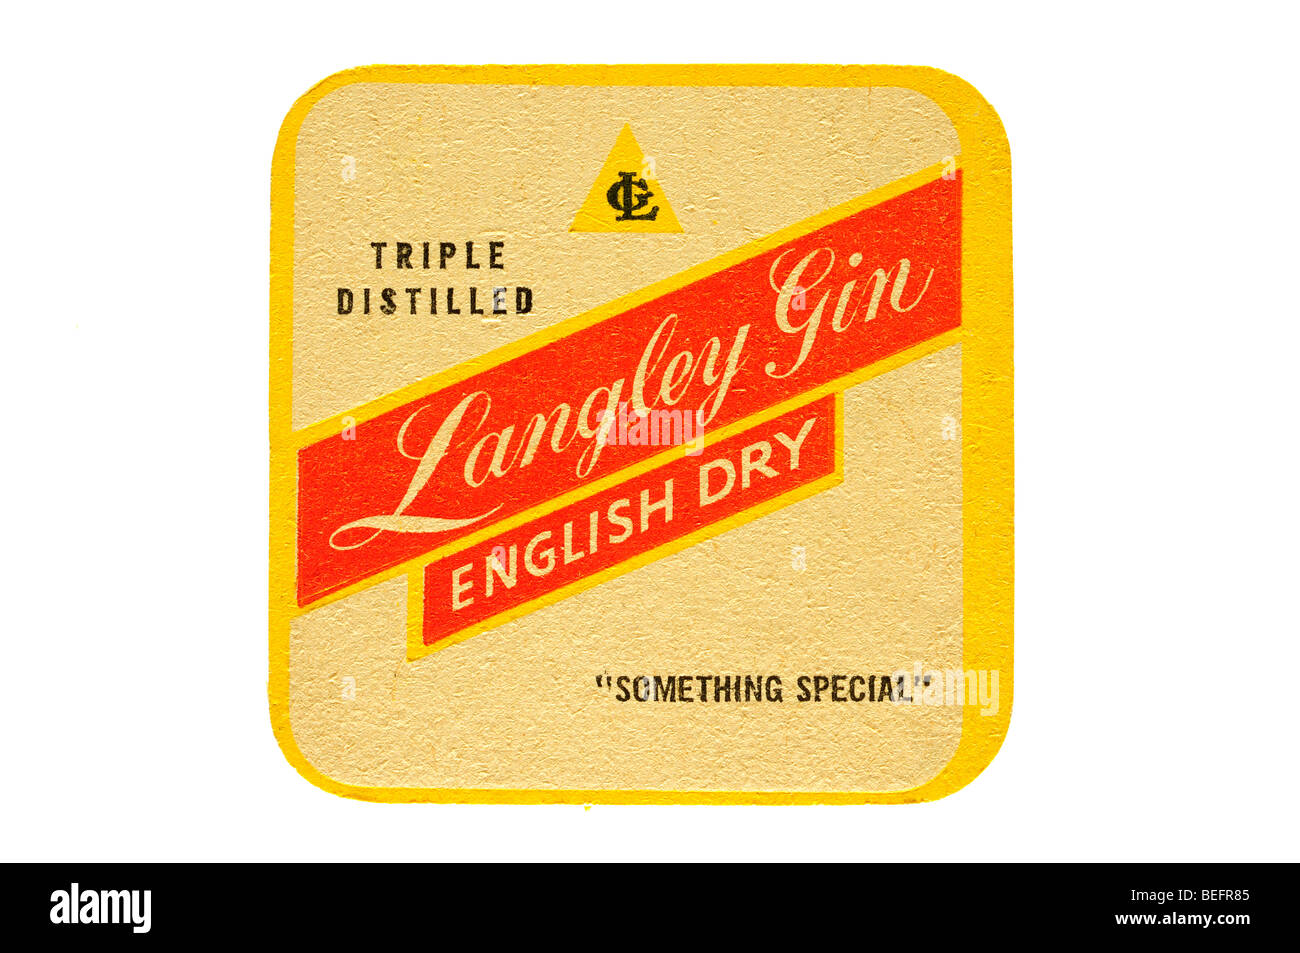 triple distilled langley gin english dry something special - Stock Image